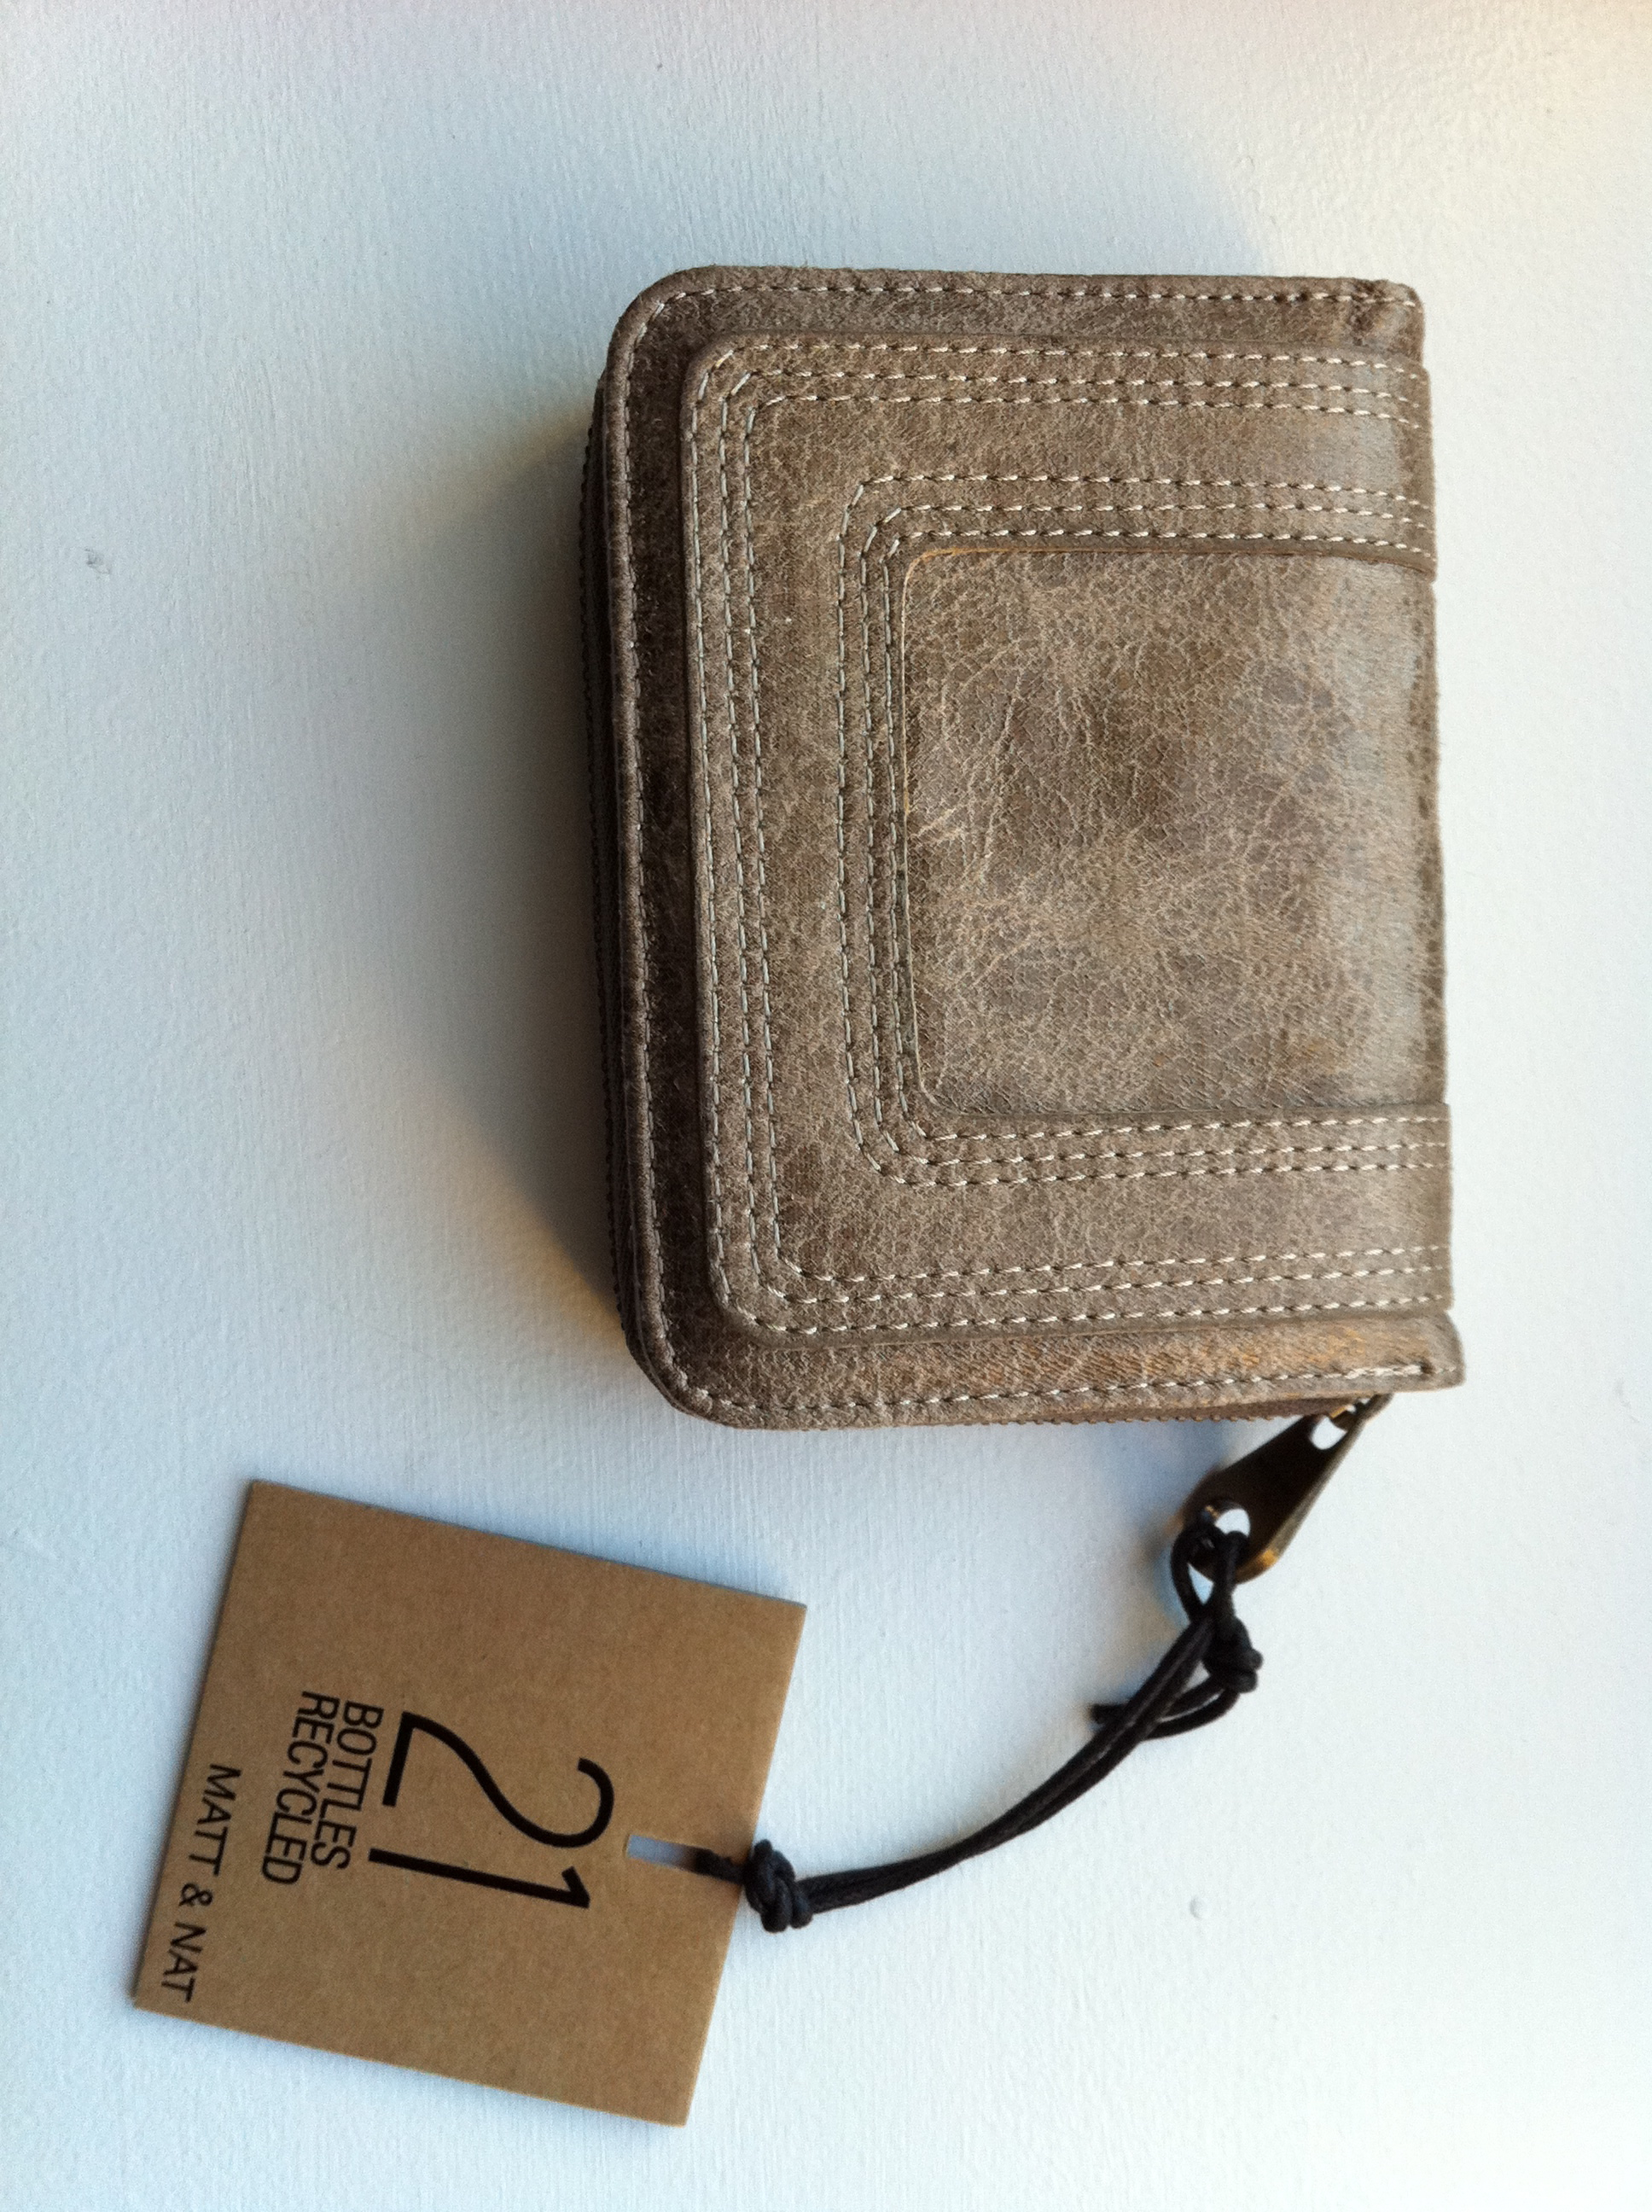 This Matt & Nat wallet is totally earth-friendly and made from recycled materials.